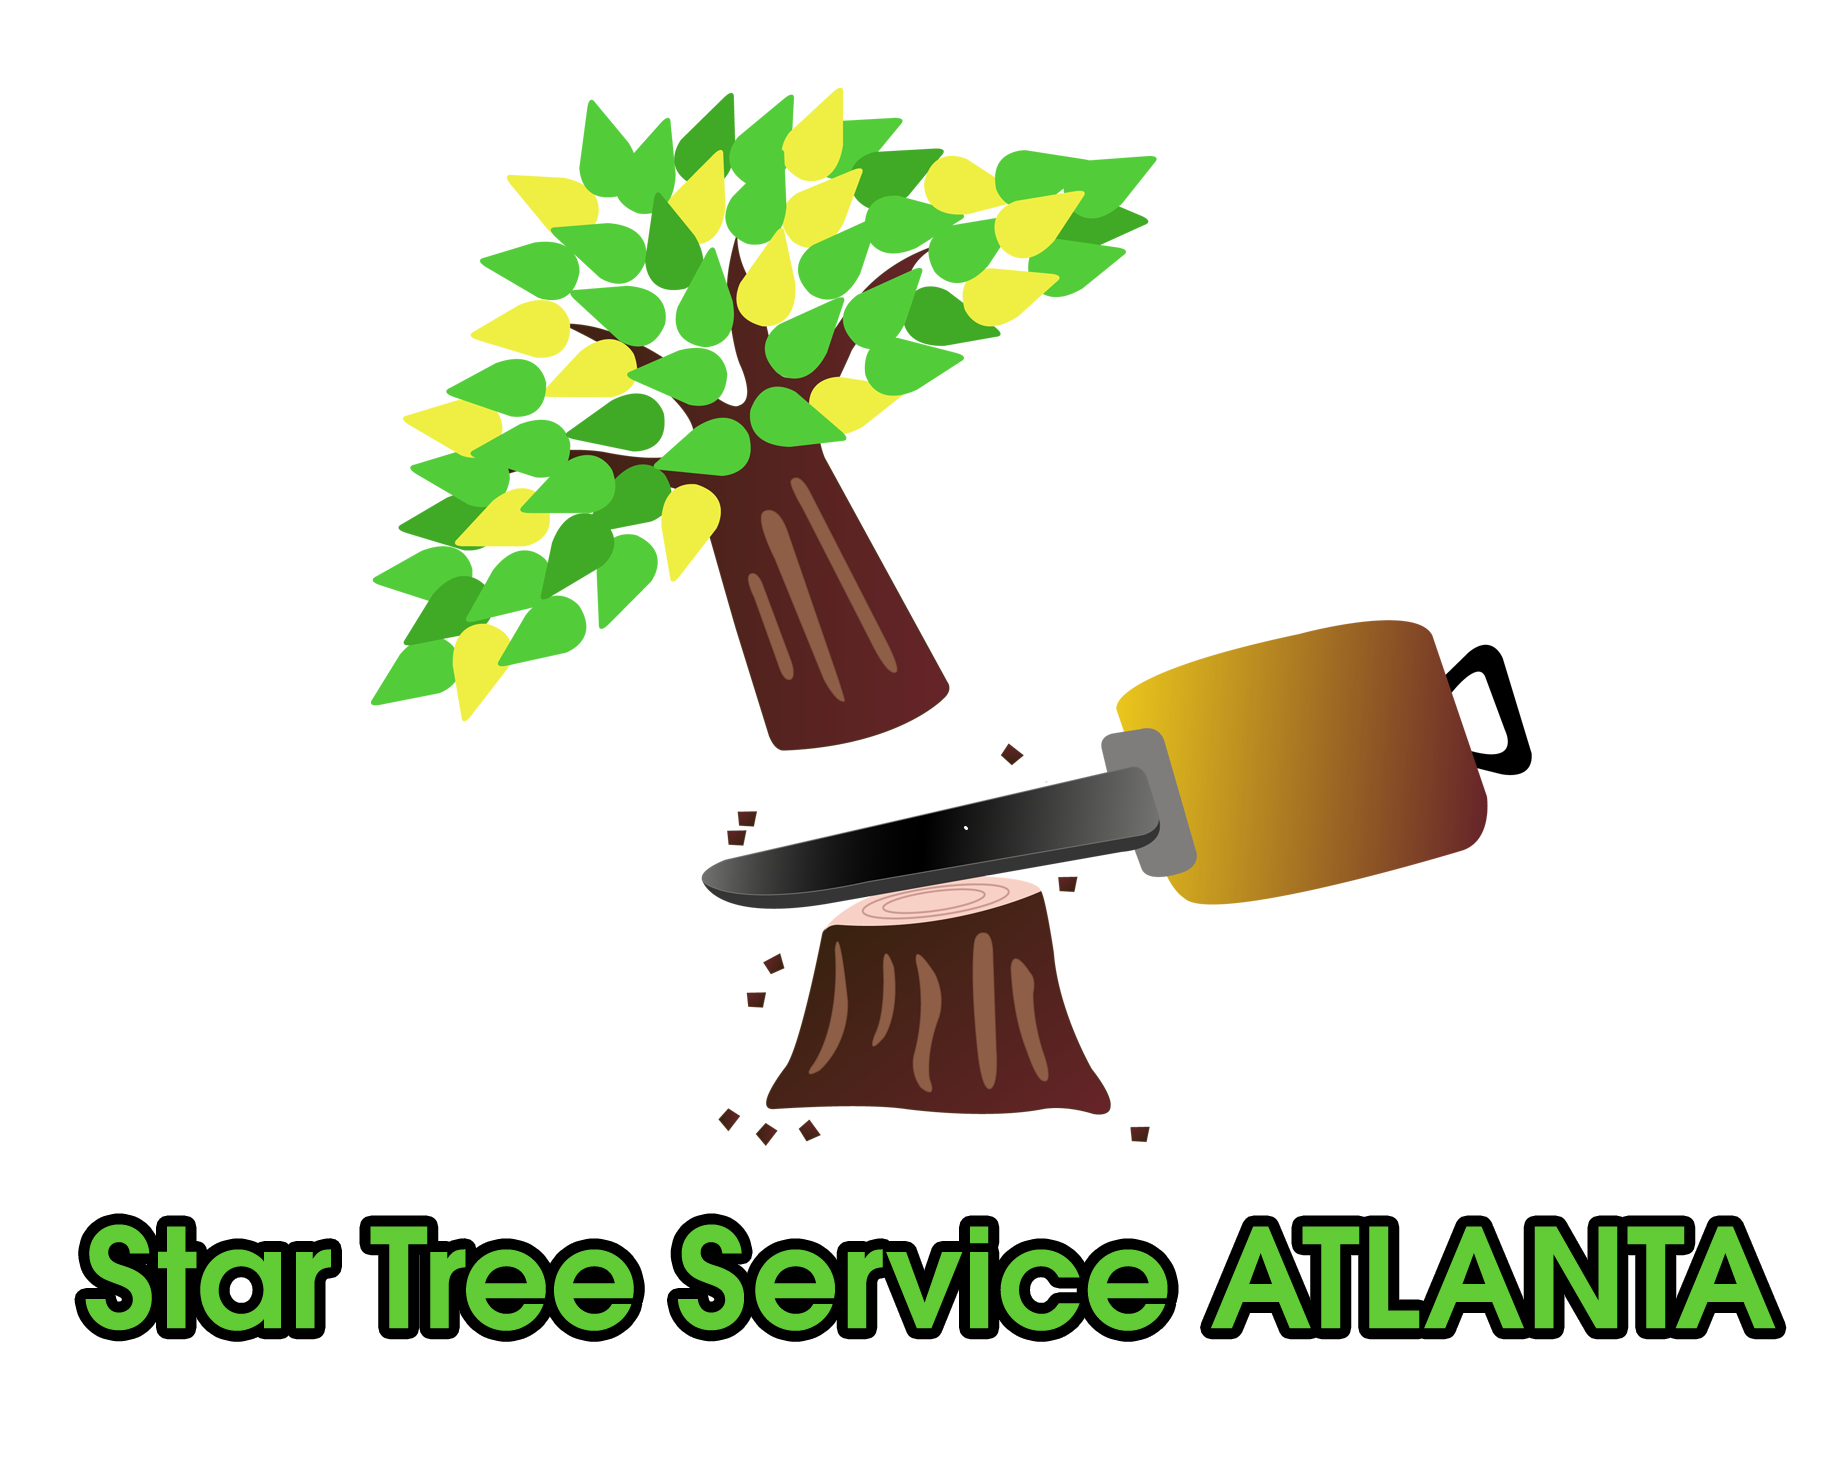 Star Tree Service Atlanta